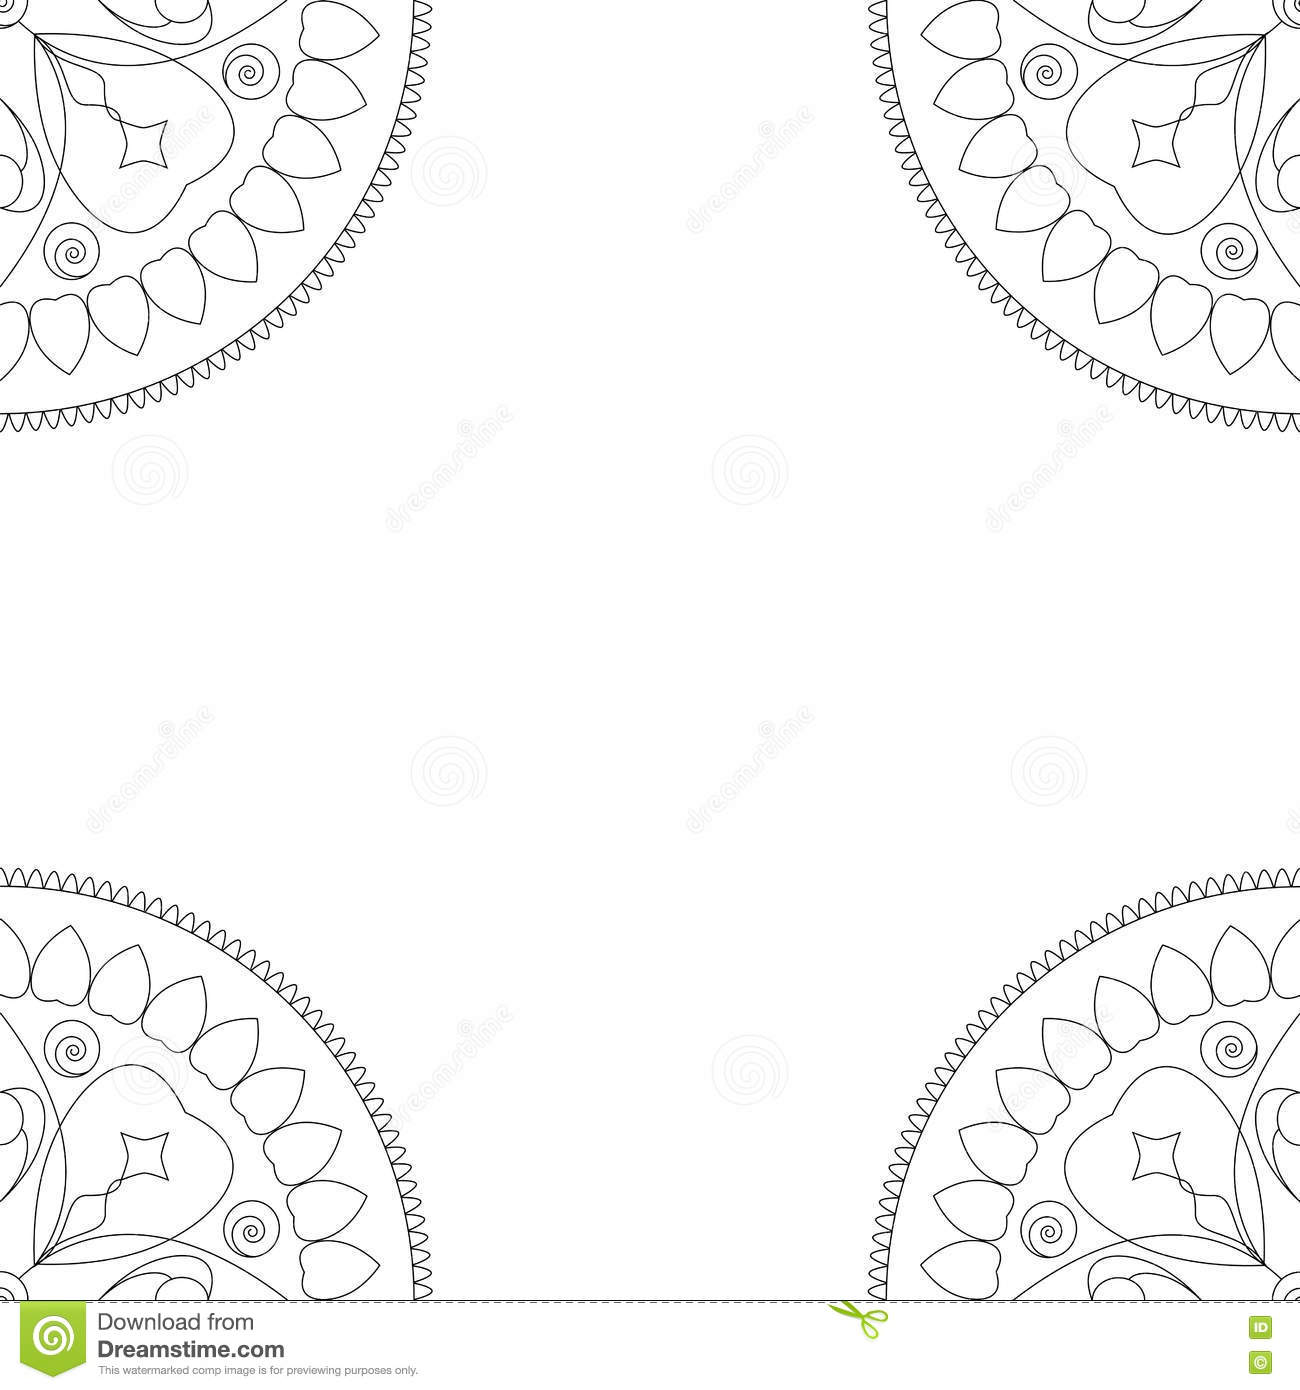 Royalty Free Vector Download Square Coloring Book Cover Or Background Illustration With Mandala